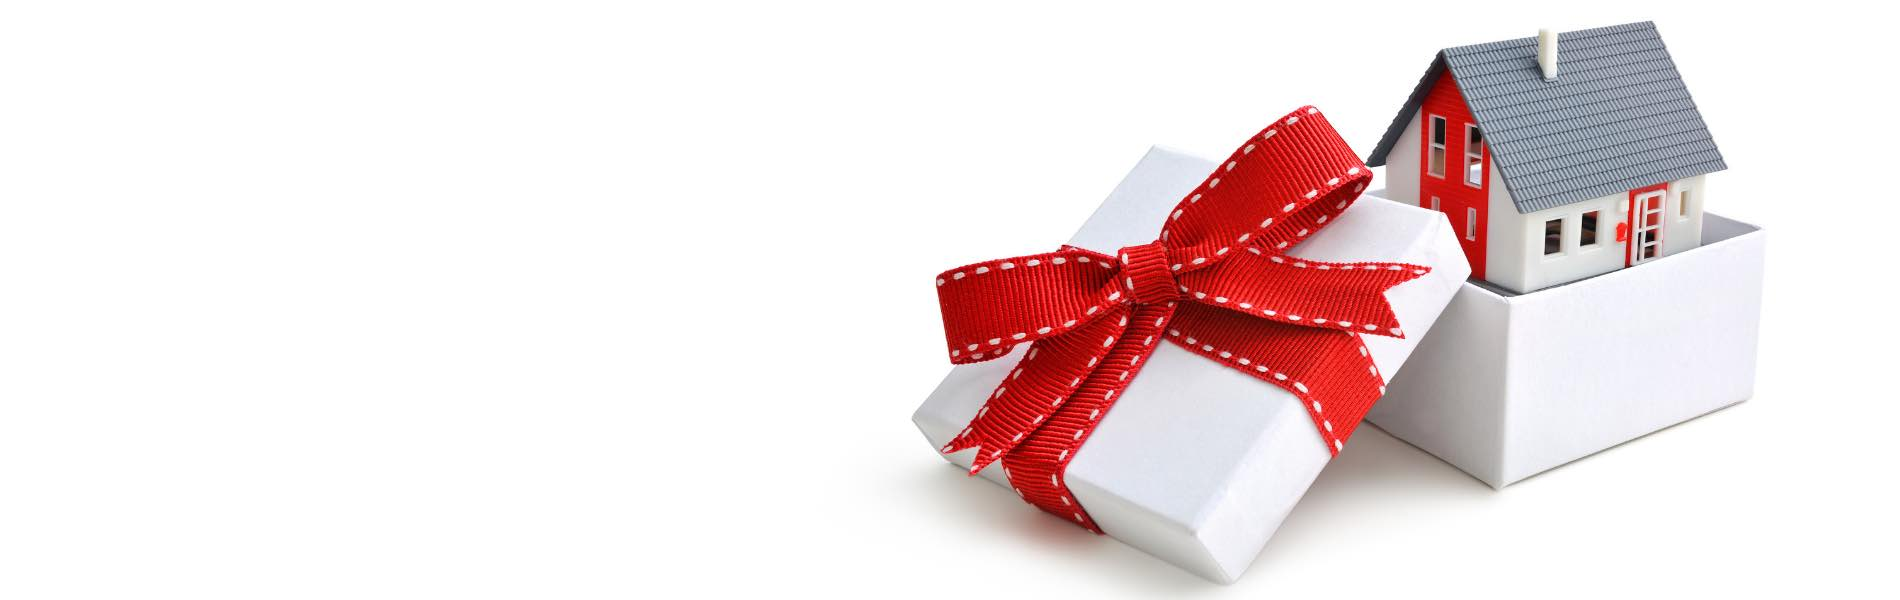 Gifting Property To Family Member >> Gifting Property: How To Transfer Home Ownership With Deed Of Gift